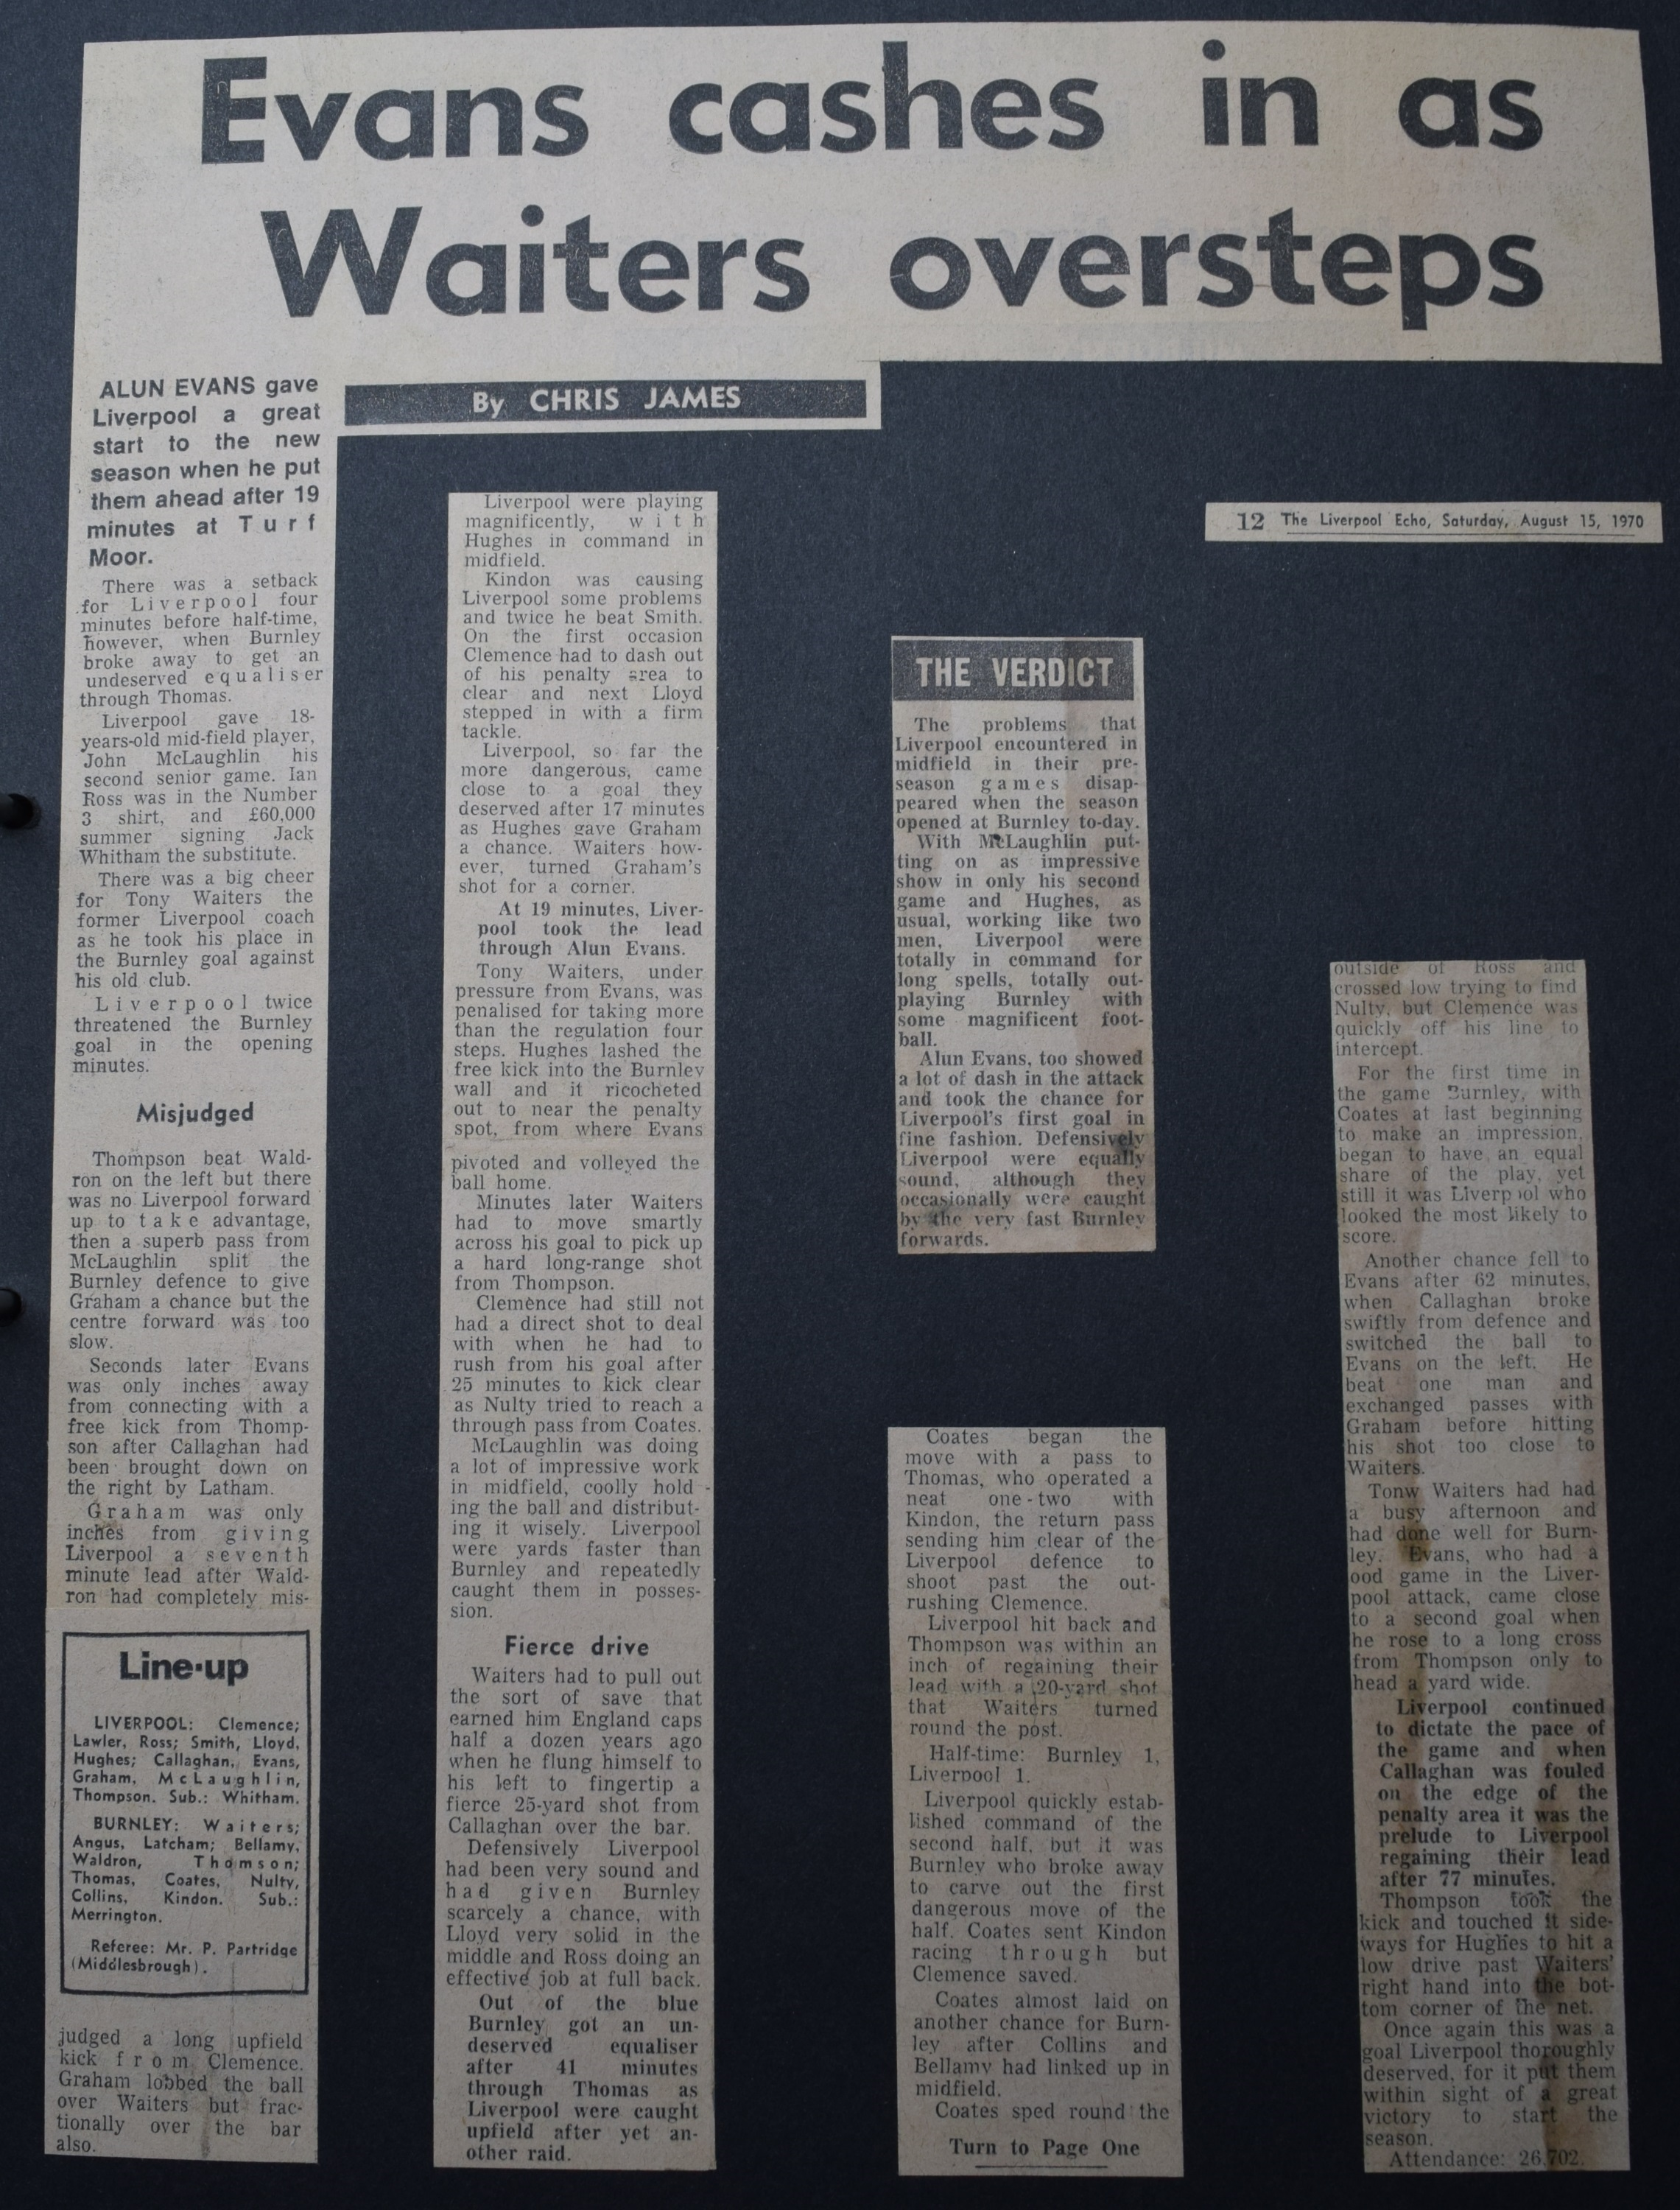 Evans cashes in as Walters oversteps - 15 August 1970